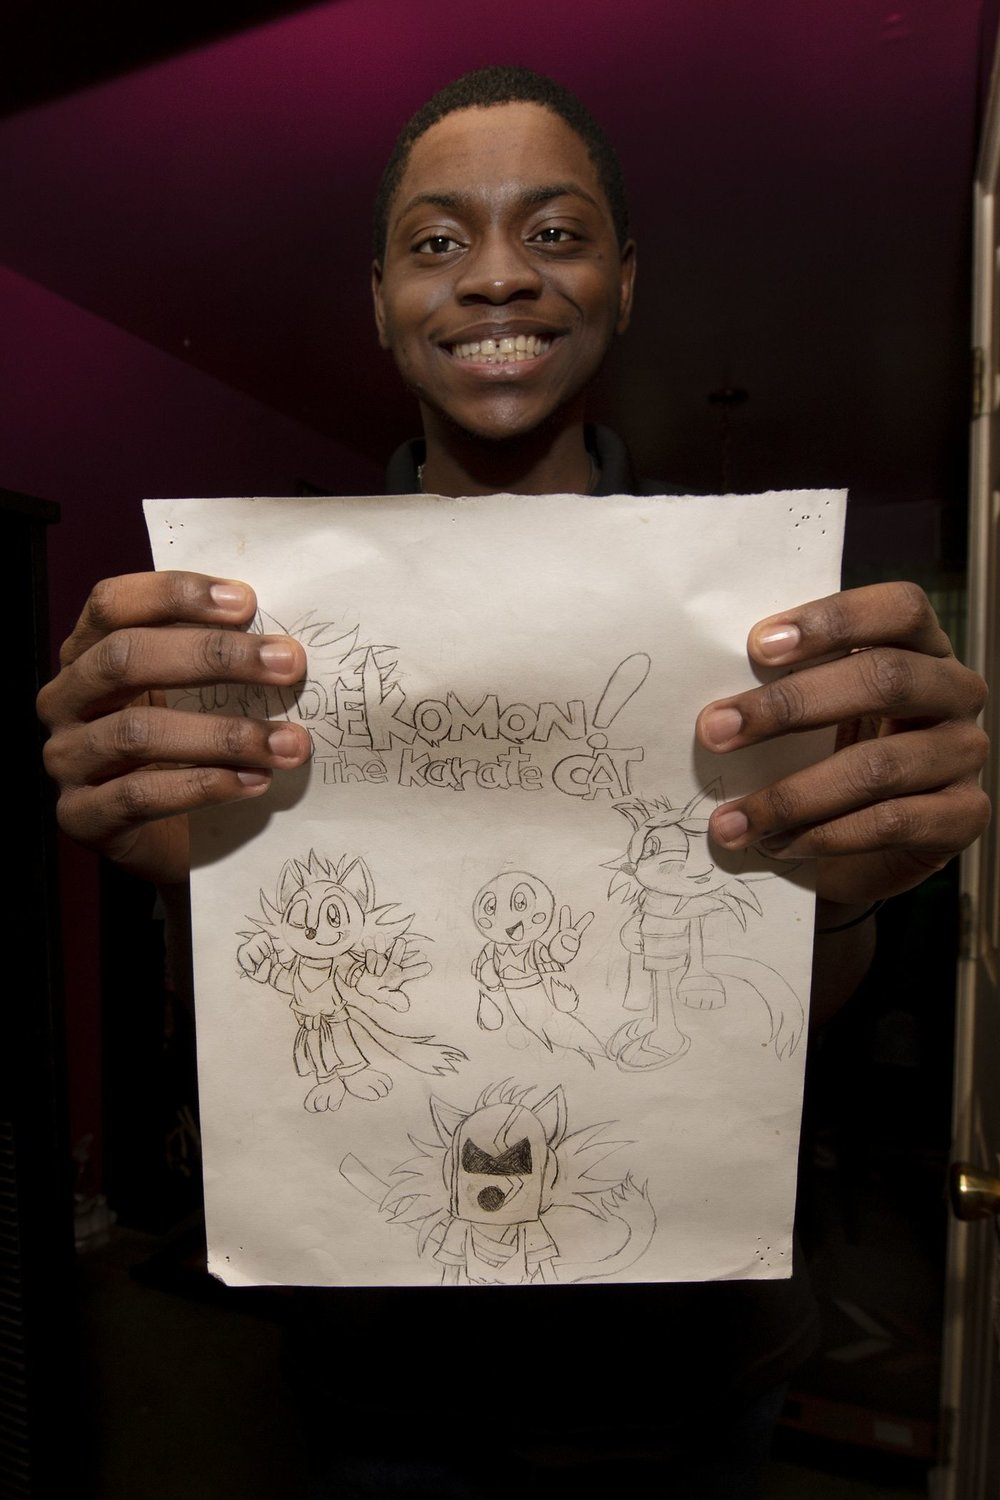 """JOSE F. MORENO / STAFF PHOTOGRAPHER Andrew Cambridge, smiles as he shows his drawings of """"Rekomon! The Karate Cat"""" at his home in Willow Grove Pa."""